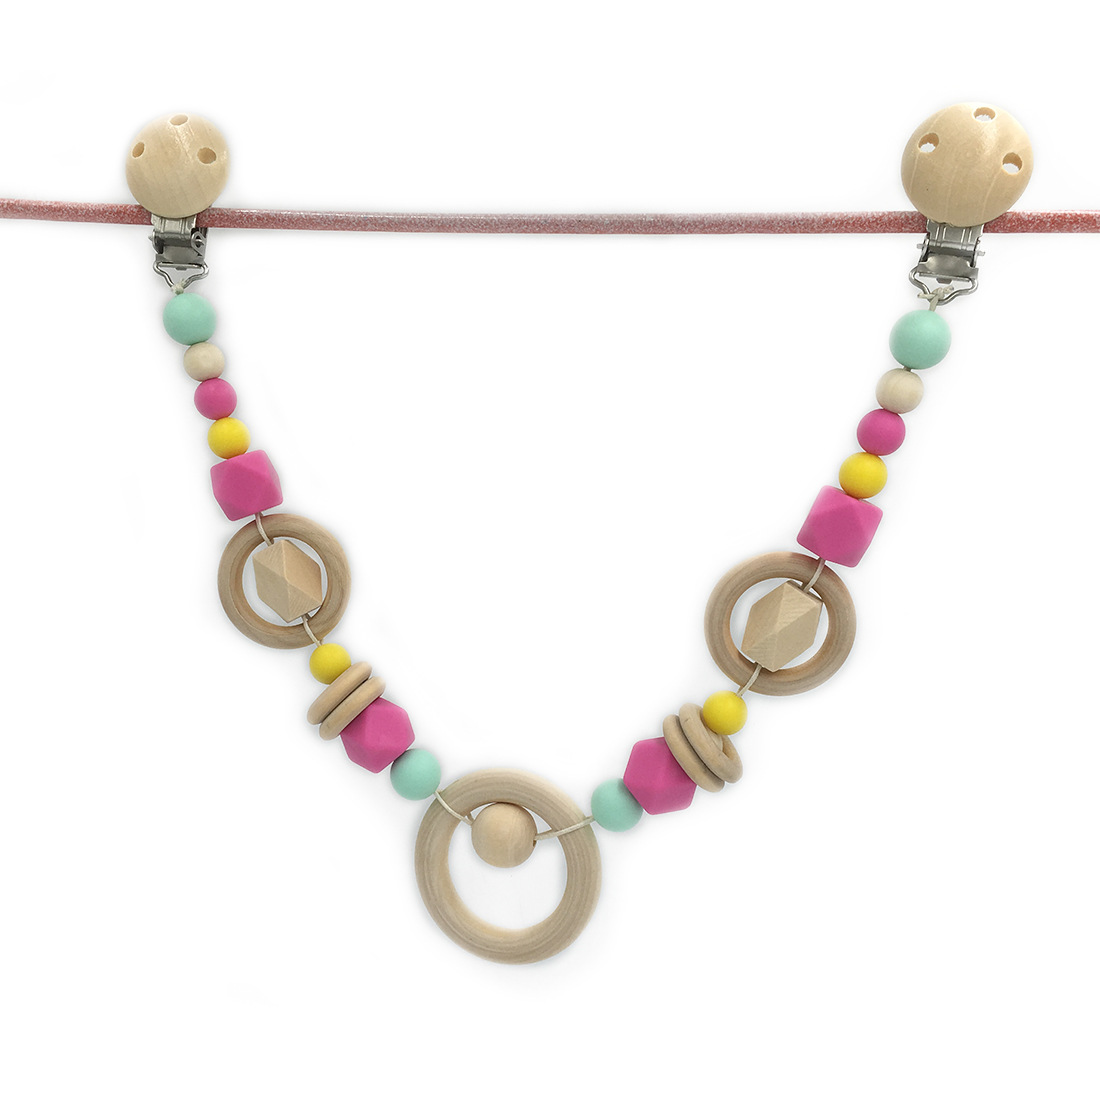 Baby stroller chain with clips Car seat chain Pram chain Beads are safe for teething Stylish Wooden teething ring